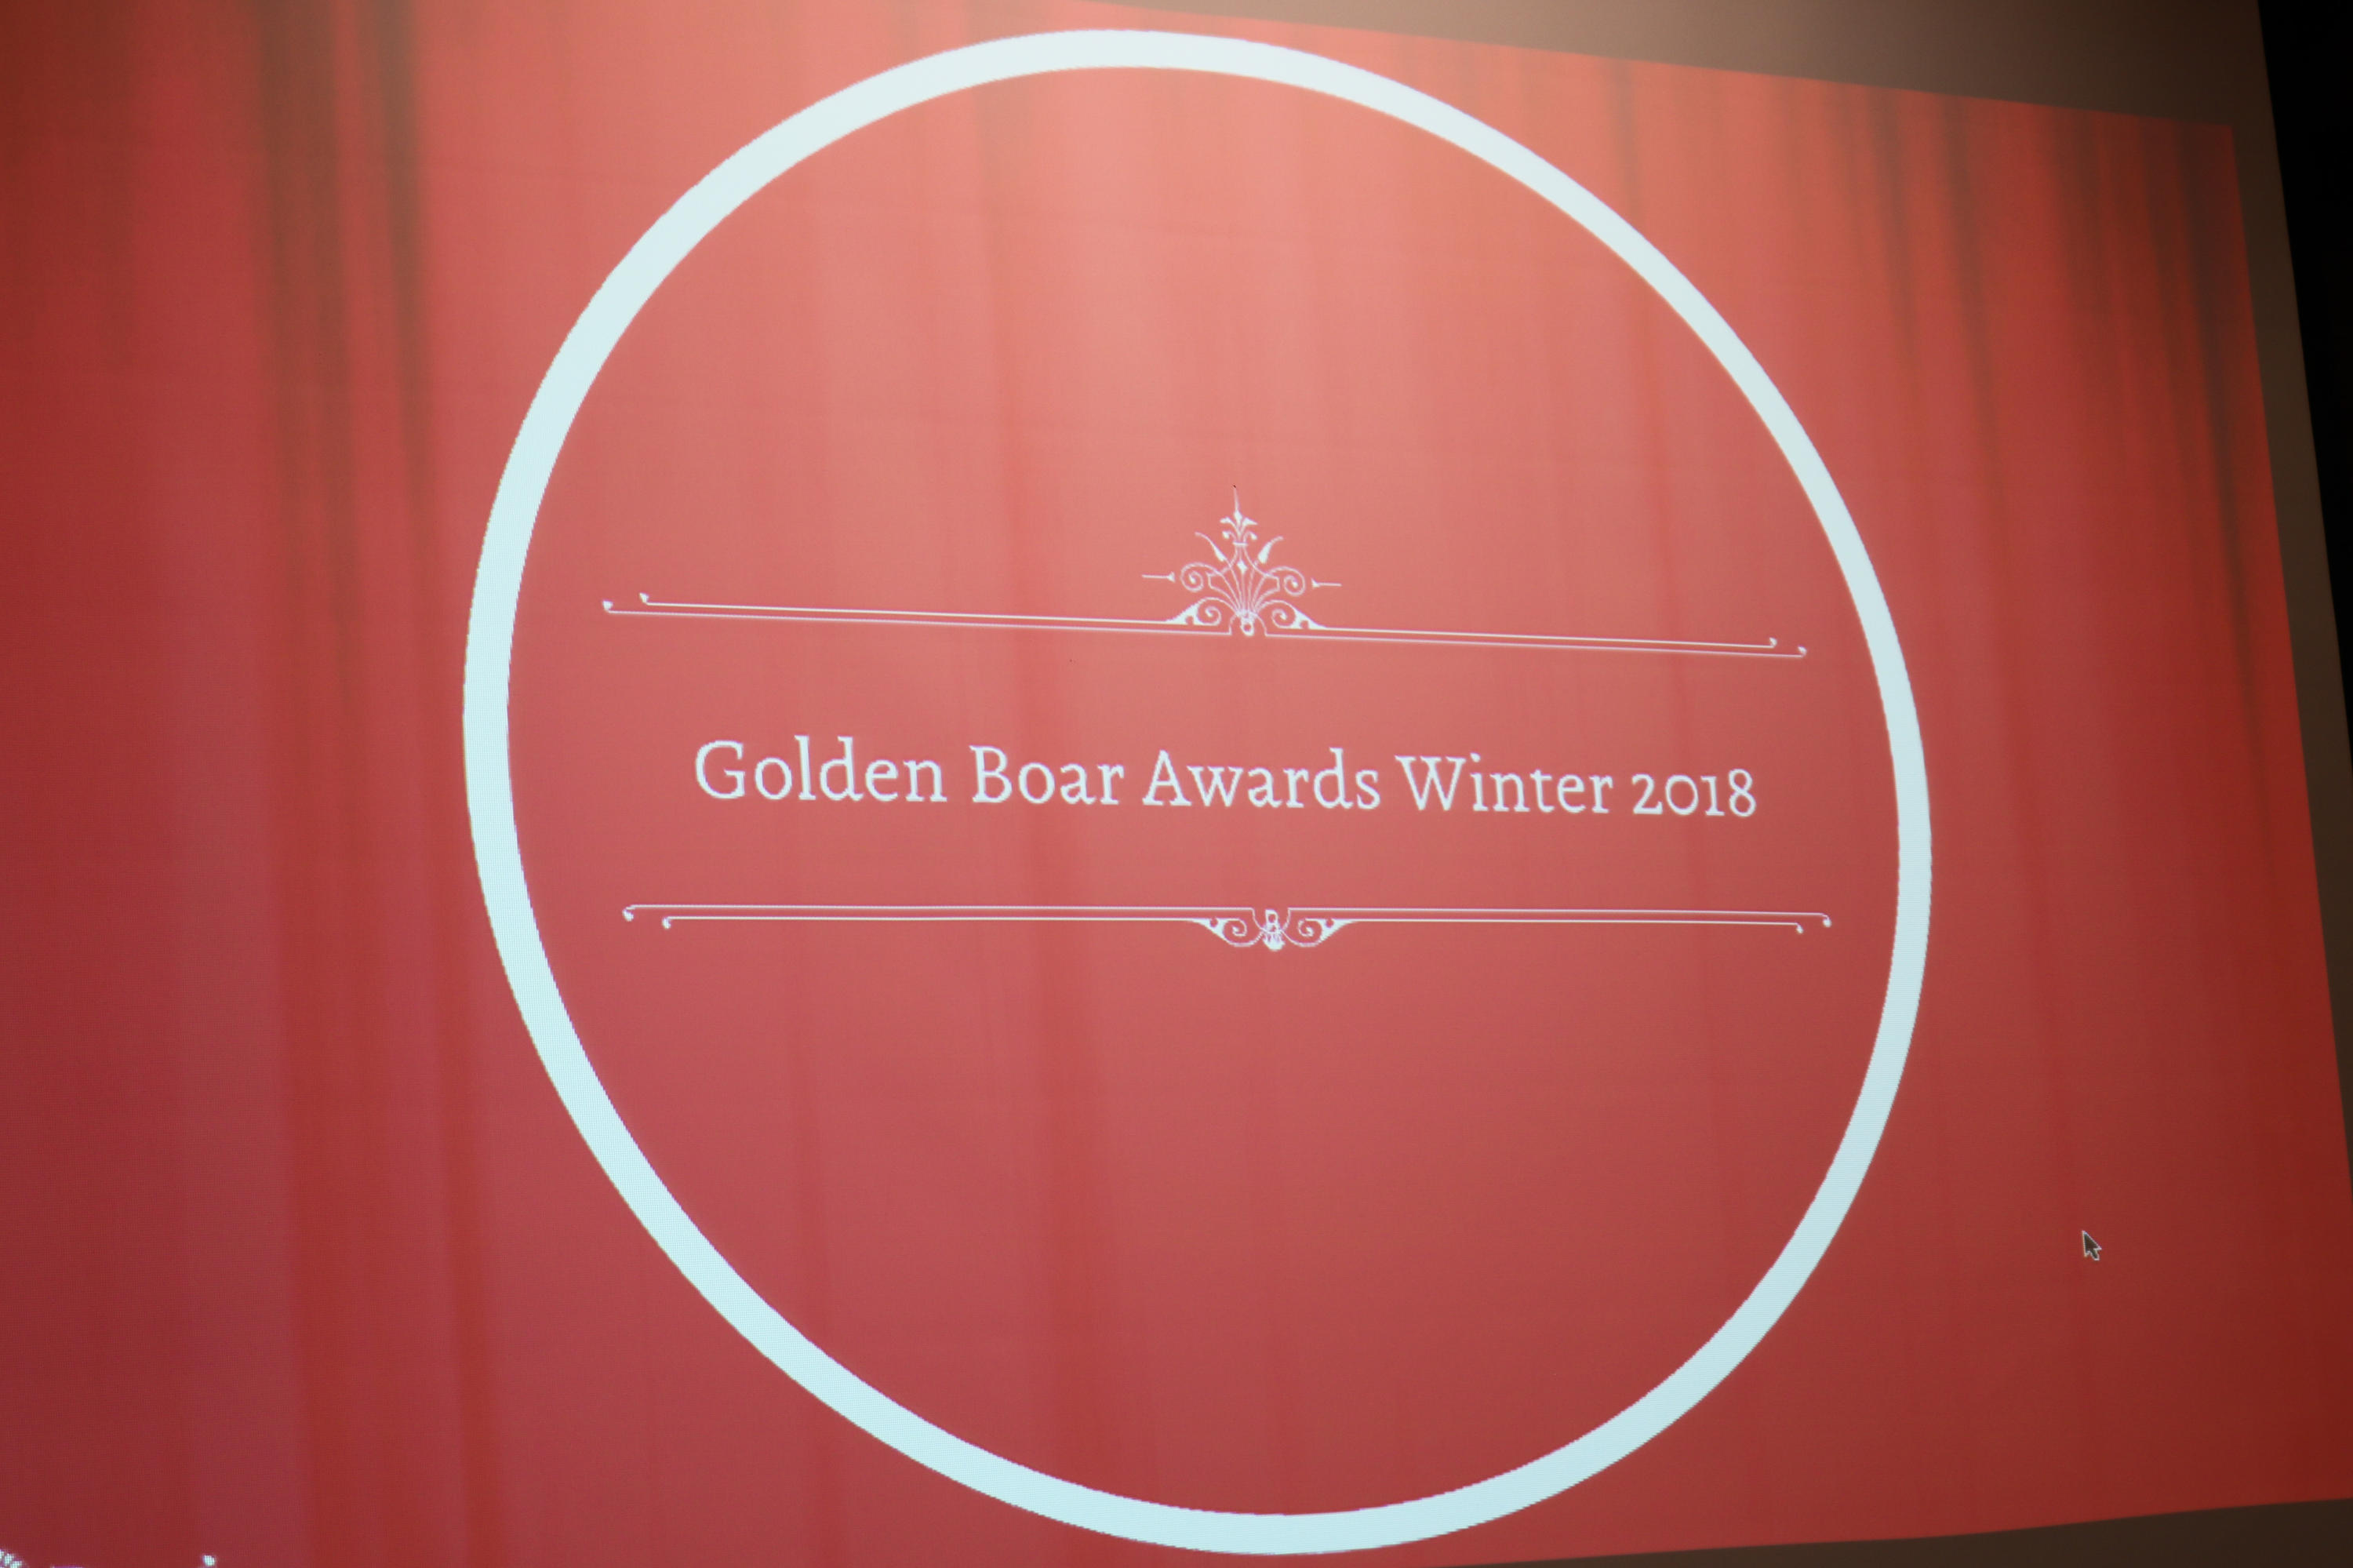 Presentation slide for Golden Boar Awards